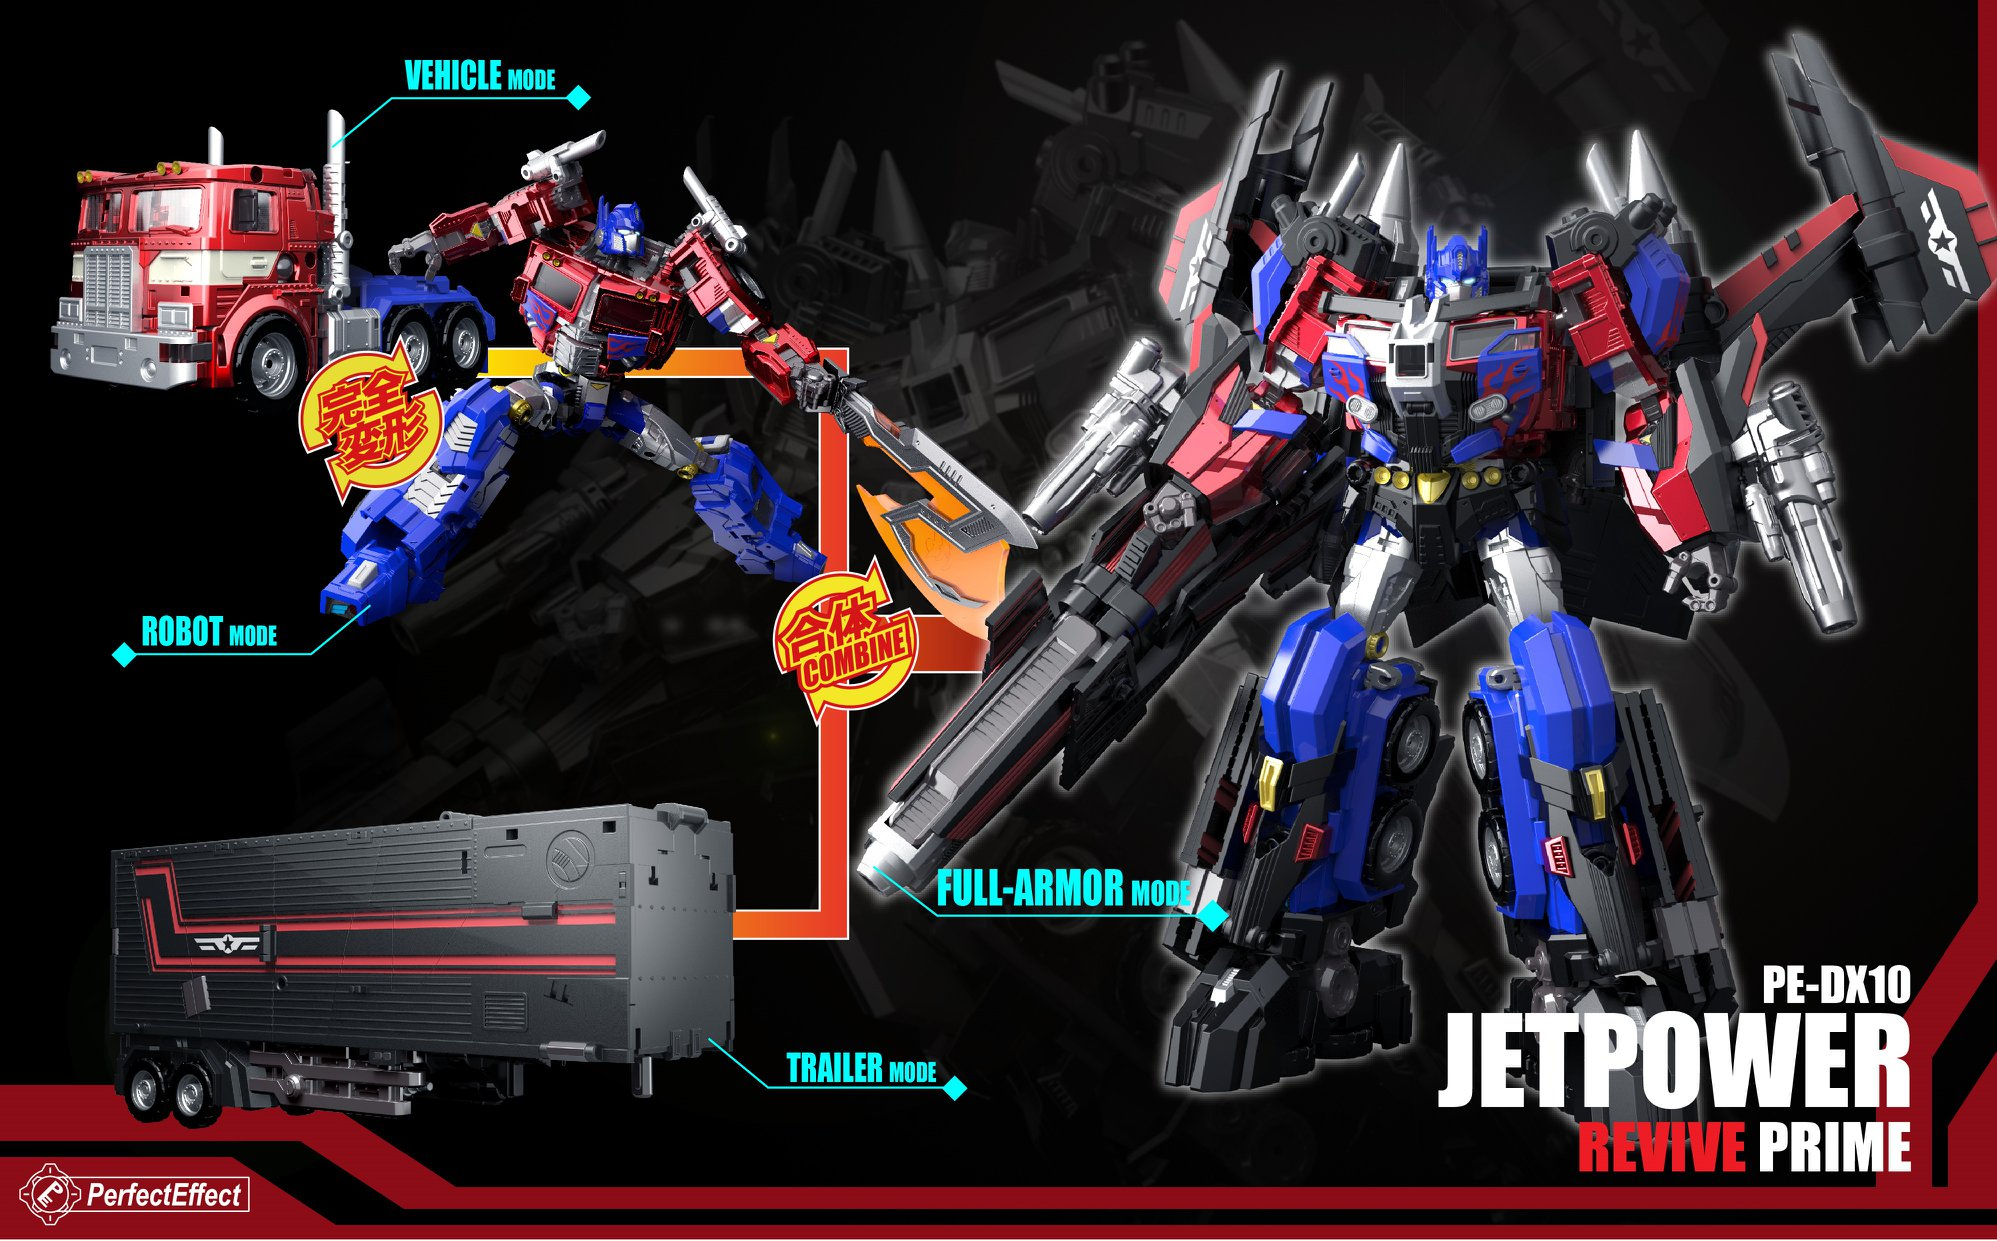 PerfectEffect 24cm Transformer PE DX10Jetpower Revive Prime Action Figure New